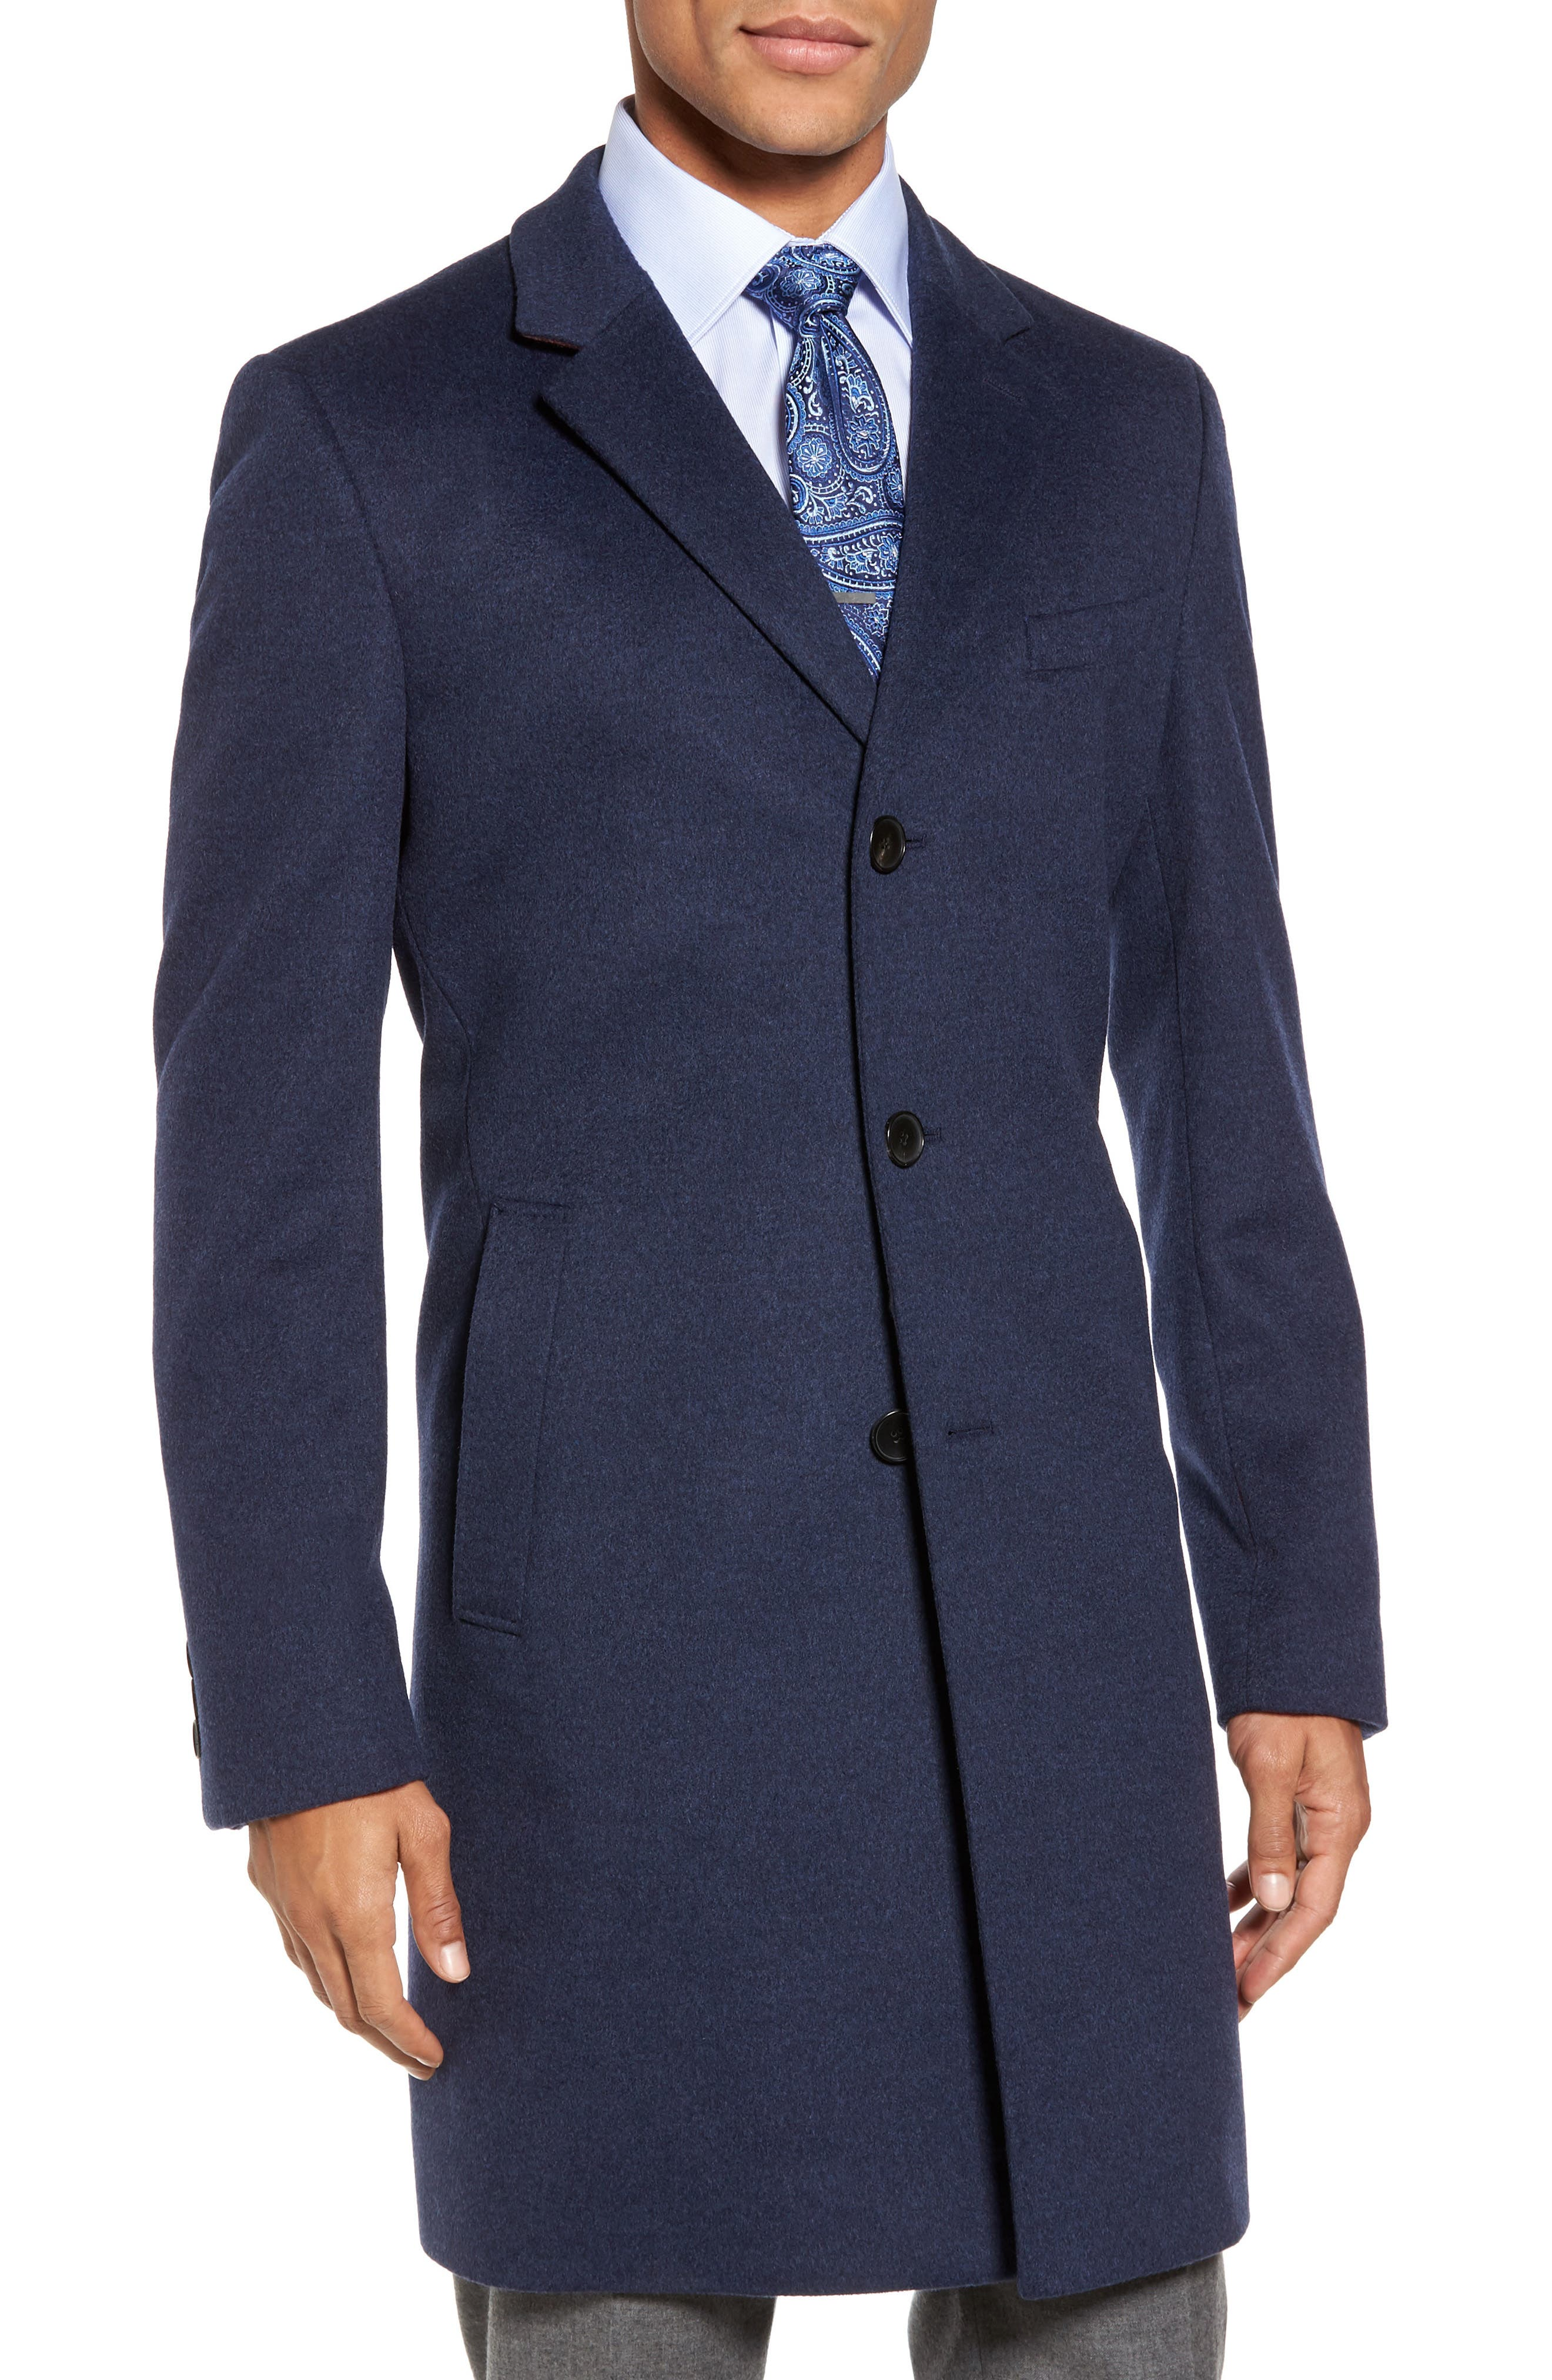 Nye Wool & Cashmere Topcoat,                         Main,                         color, Bright Blue